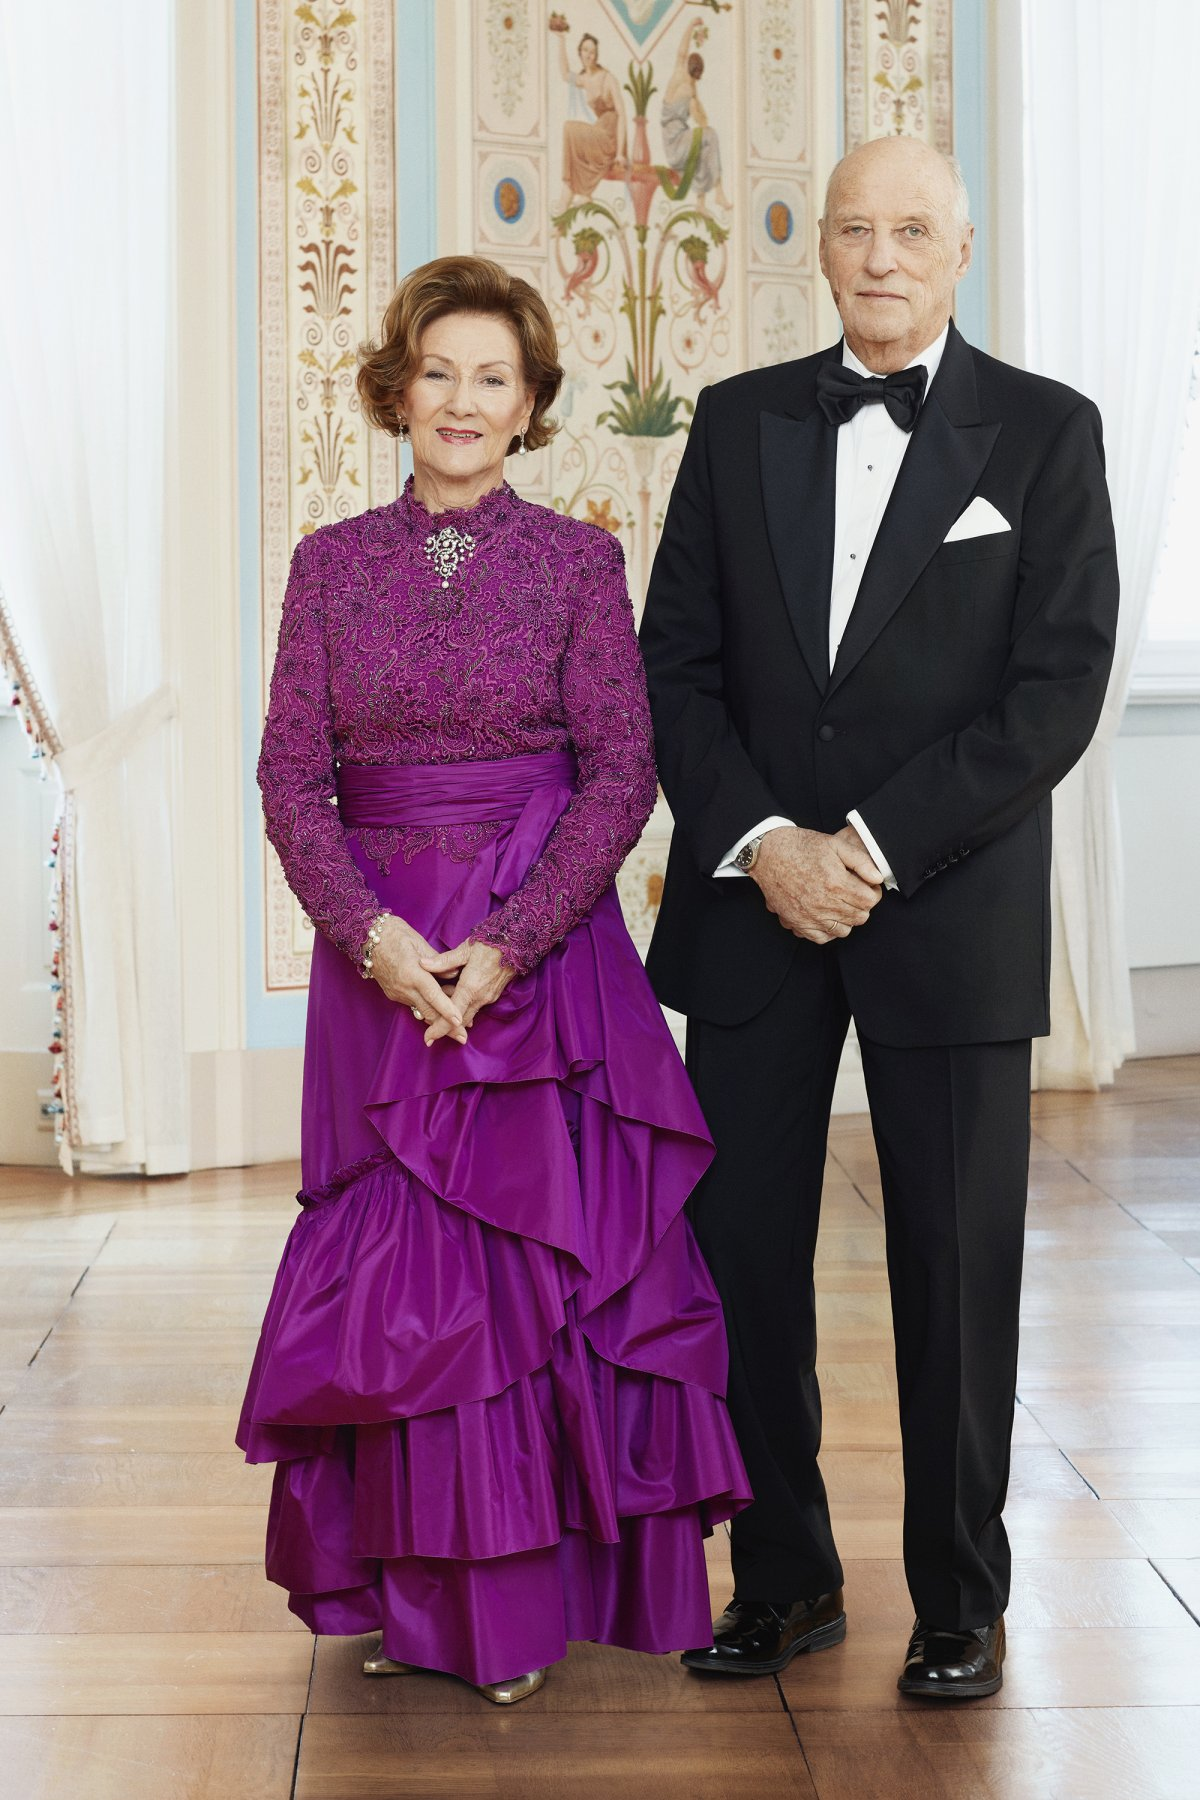 Portraits taken to mark the 30th anniversary of King Harald V of Norway's accession to the throne